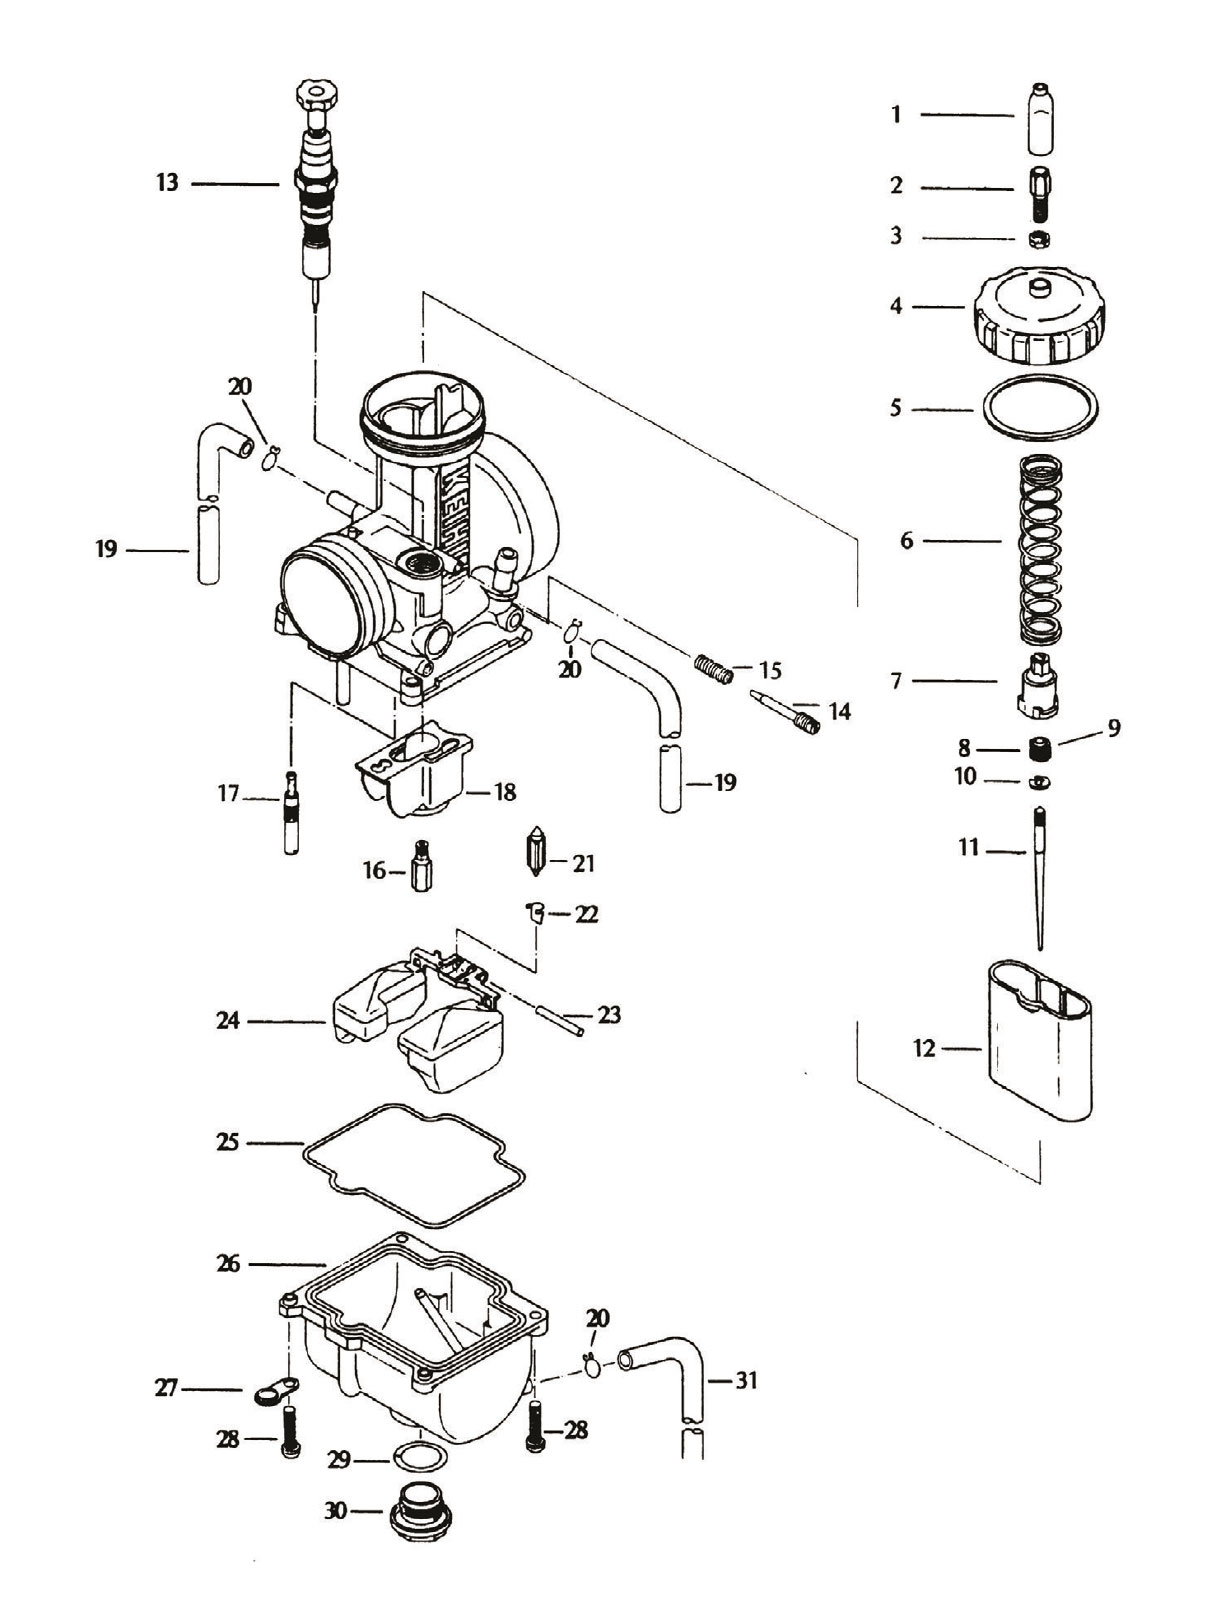 Exploded View Parts Diagram Keihin Pj Carburetor